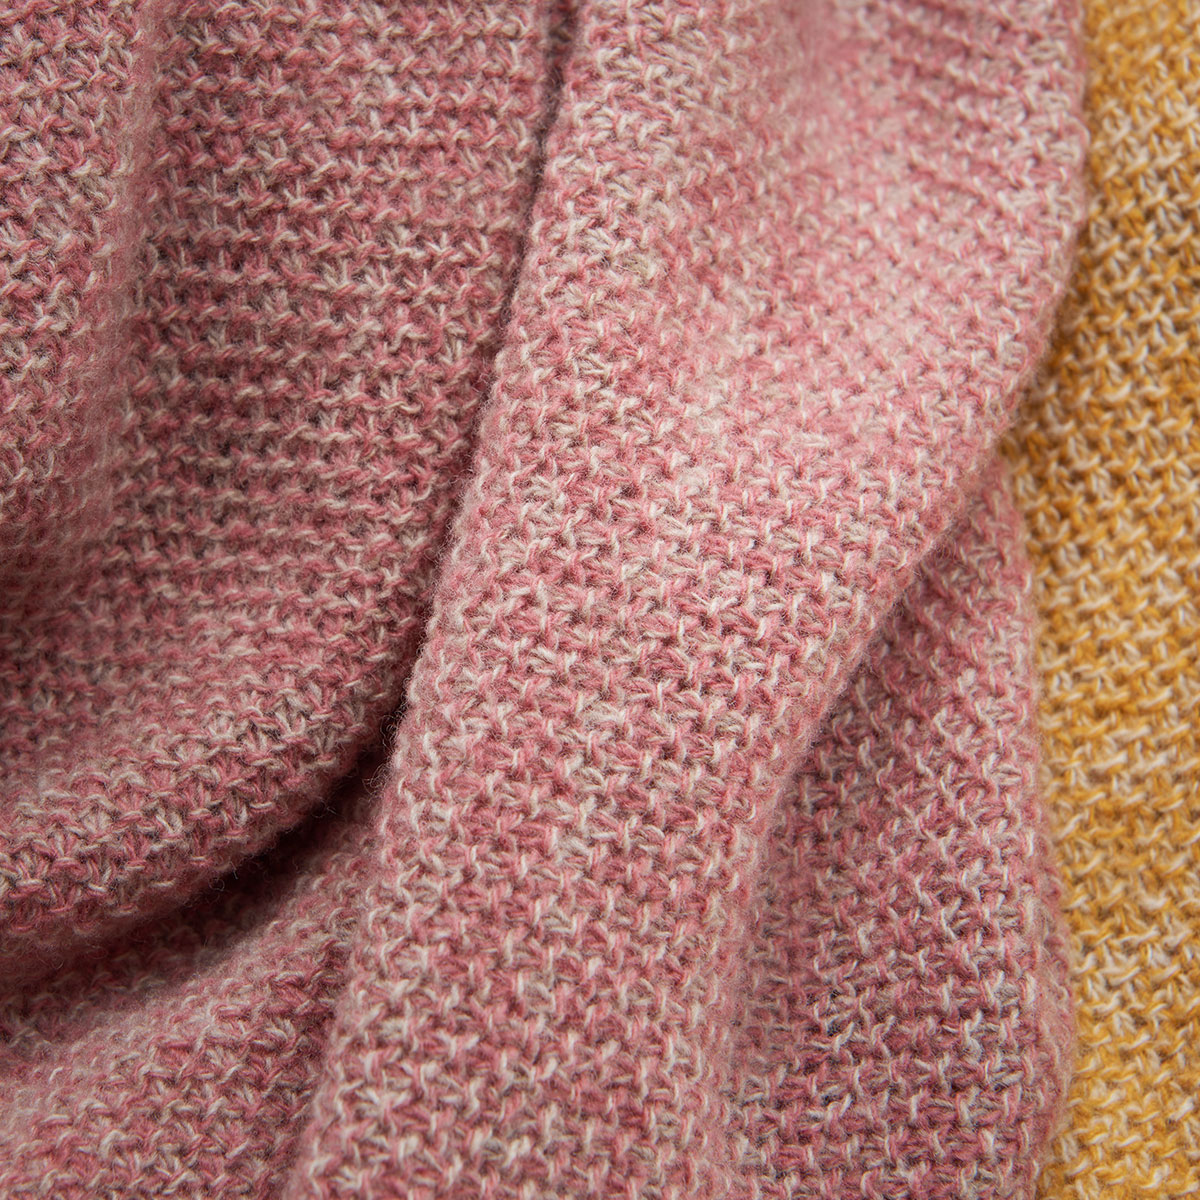 WOL wool blankets in dusty rose and amber